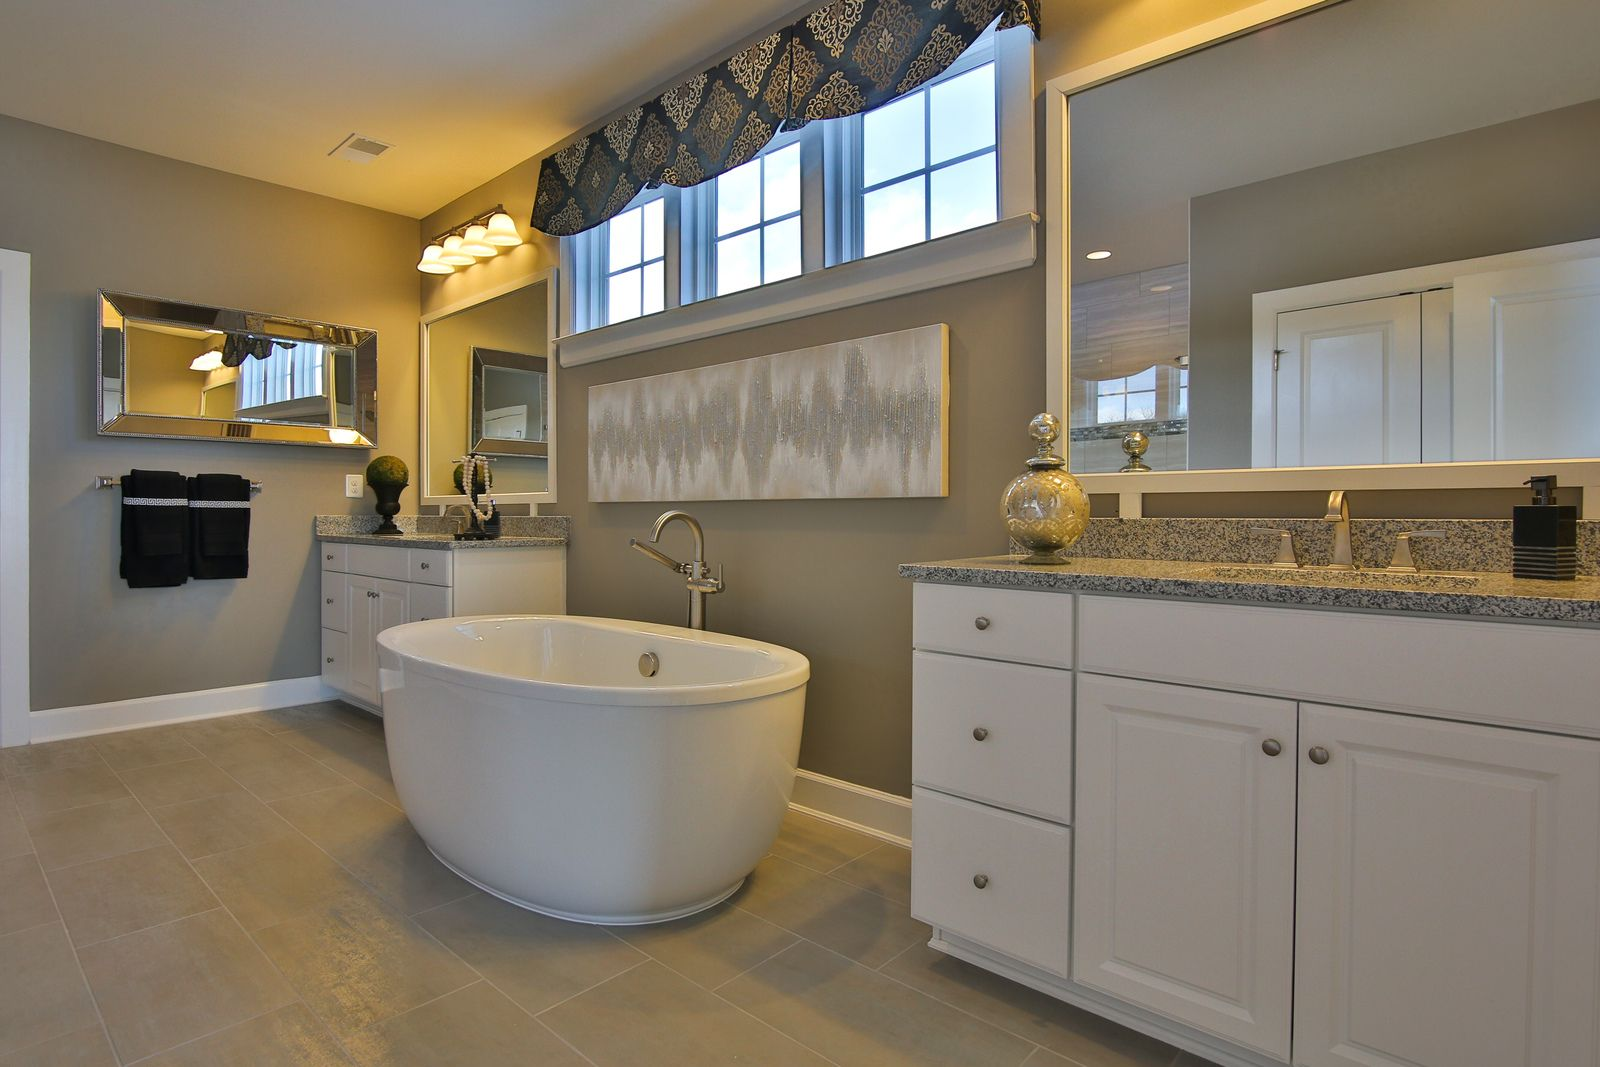 Bathroom featured in the Radford By NVHomes in Washington, MD